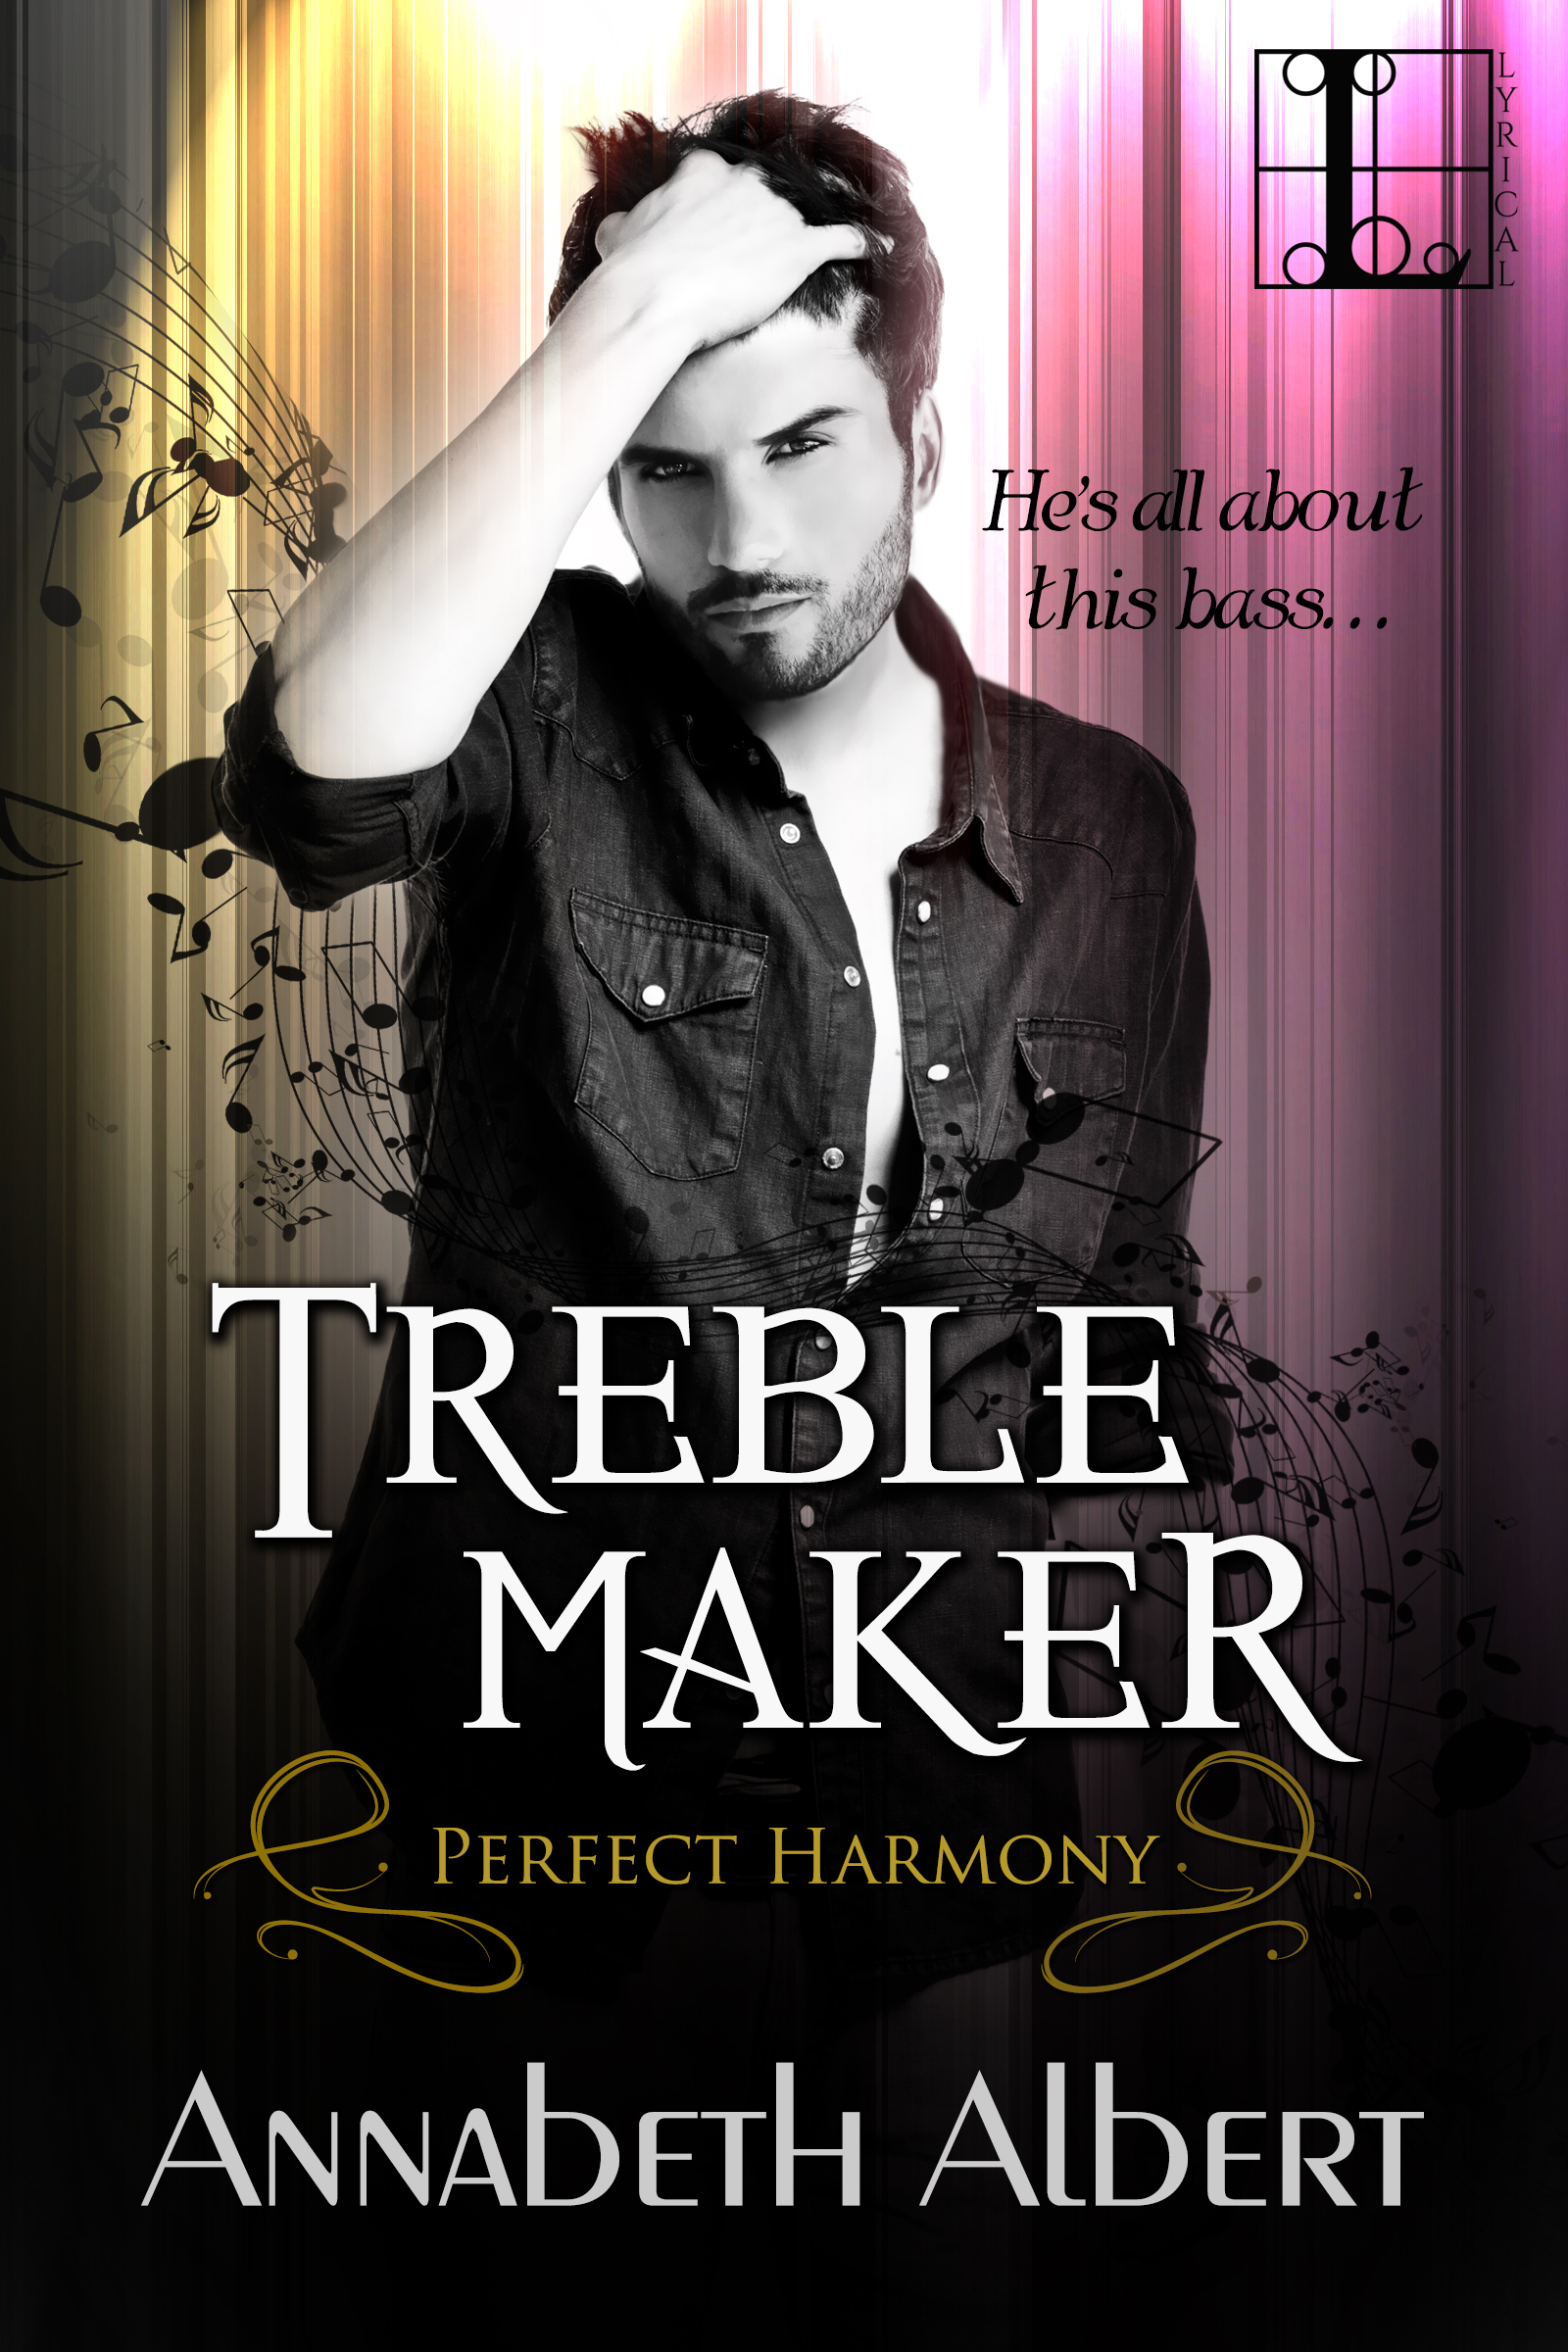 Review: Treble Maker by Annabeth Albert